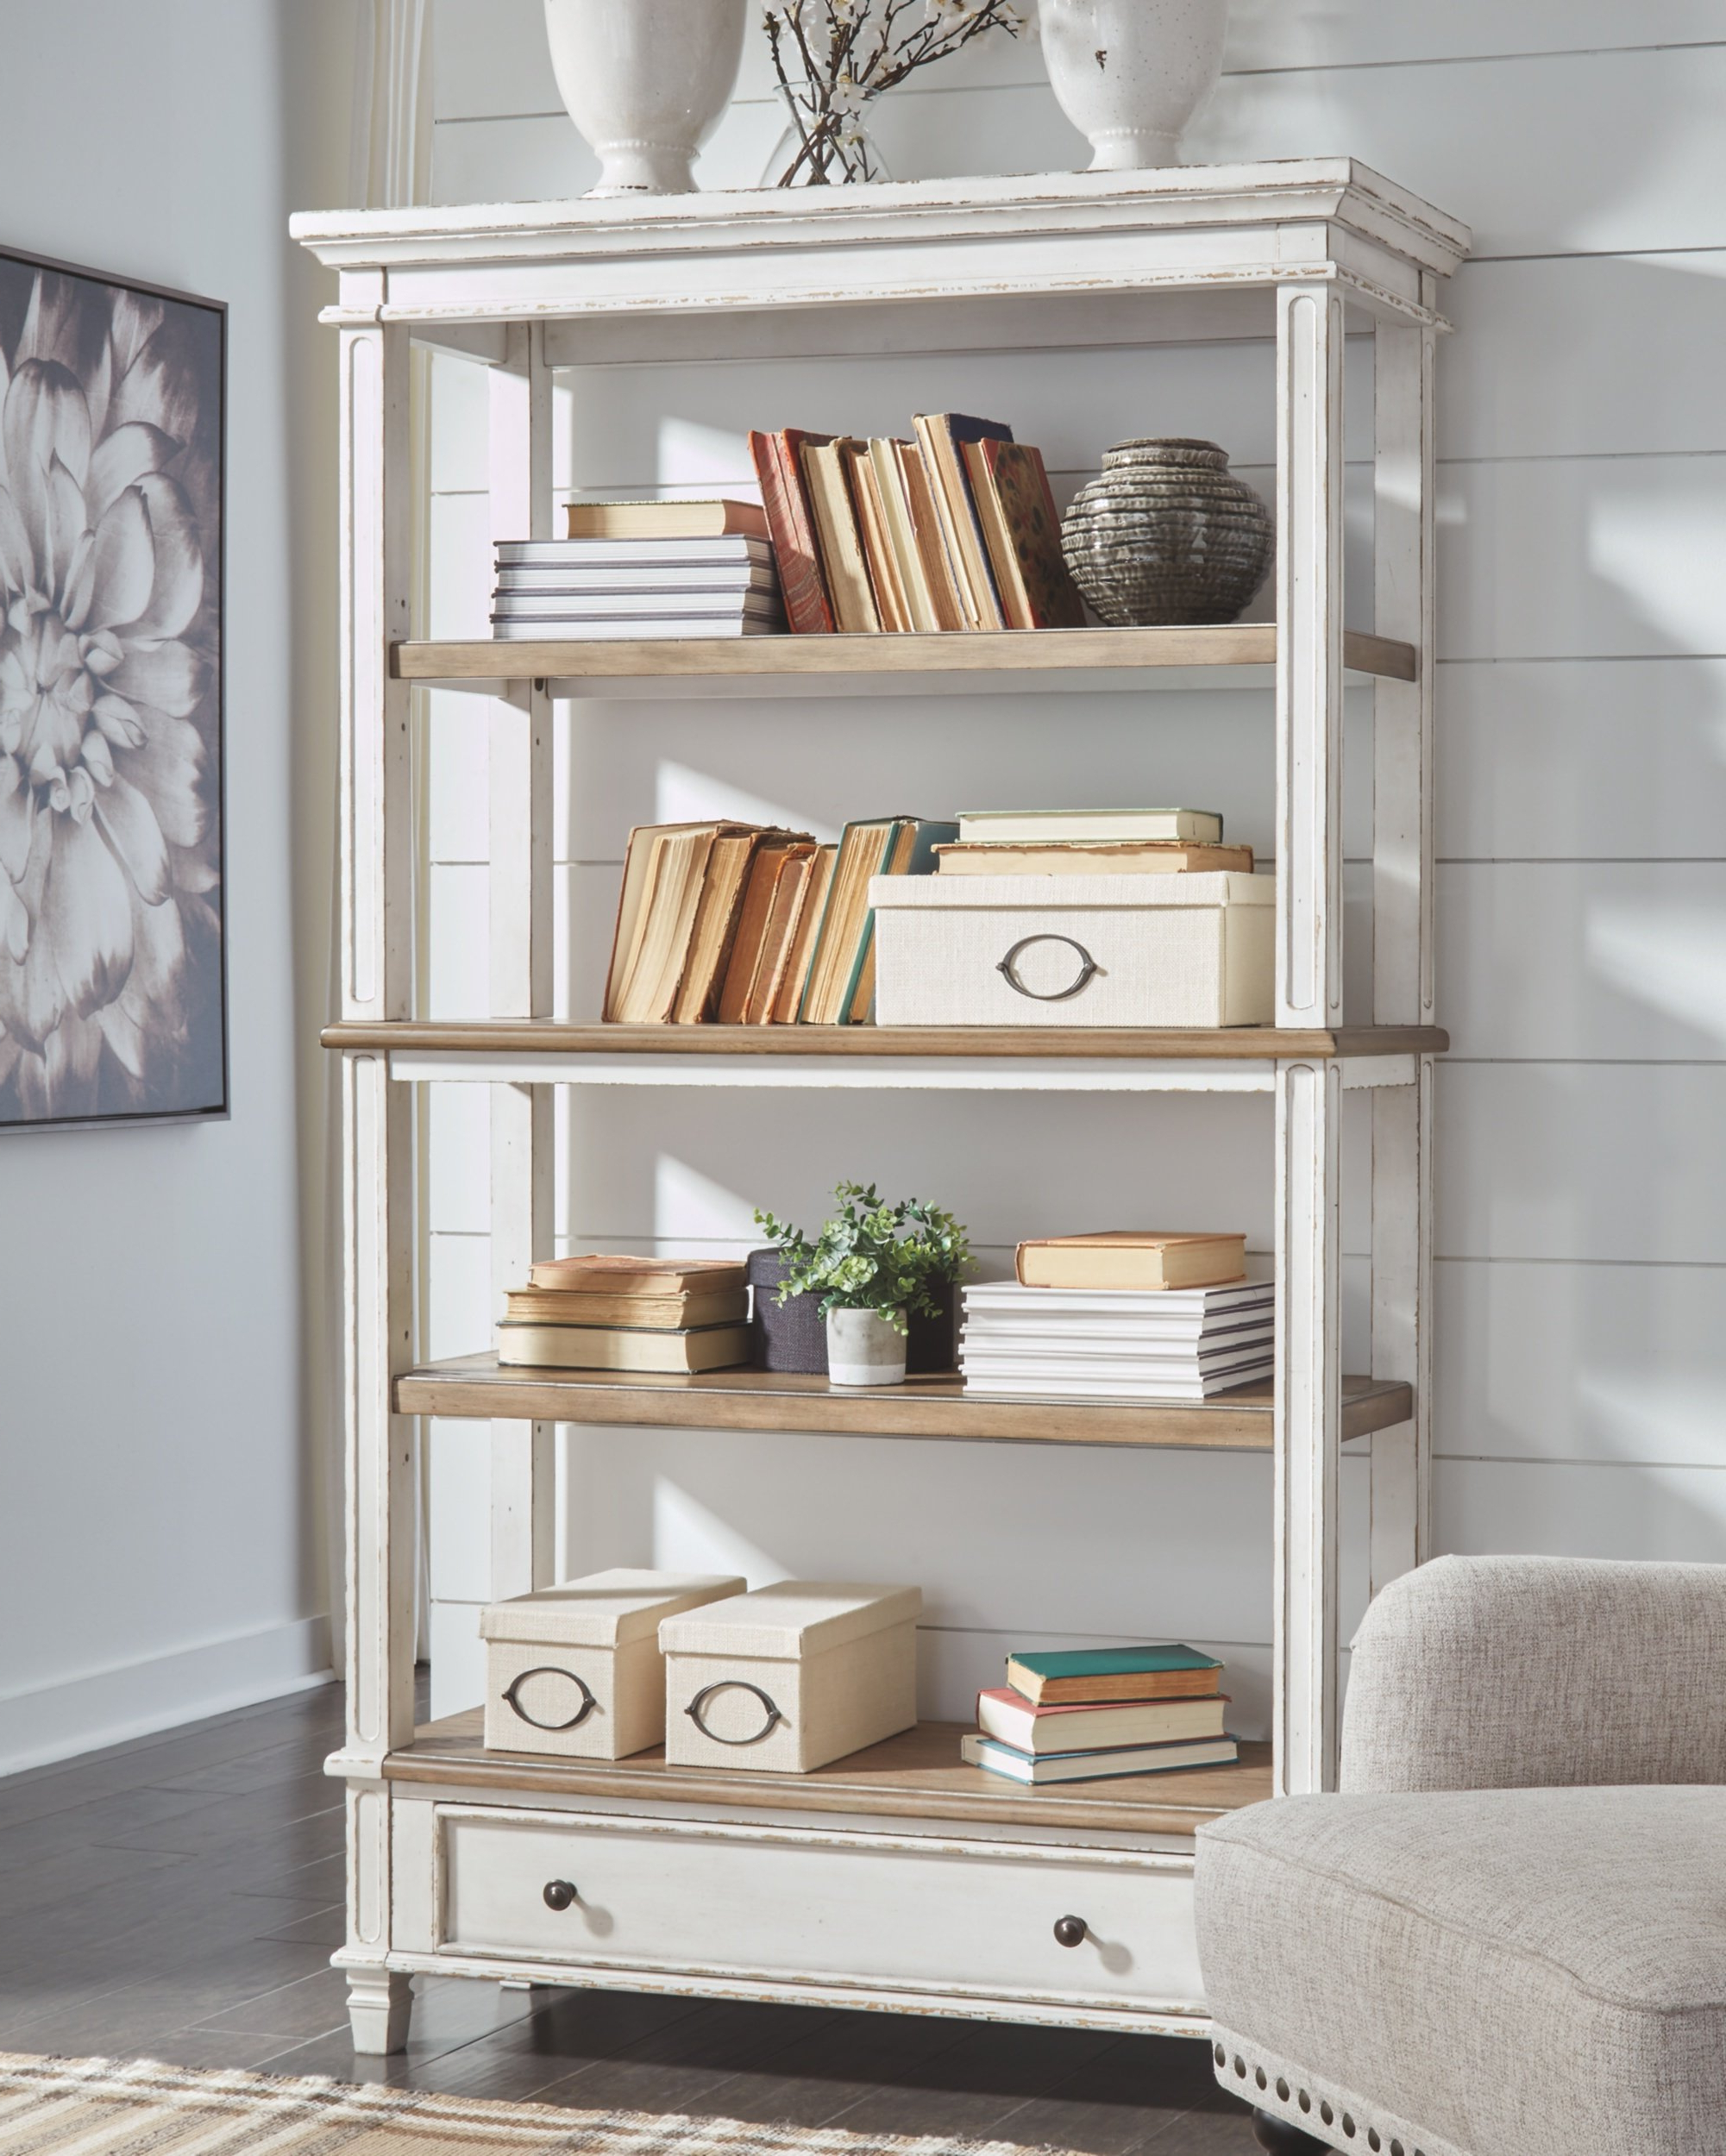 Widely Used Hitz Etagere Bookcases Inside Sara Etagere Bookcase (View 20 of 20)